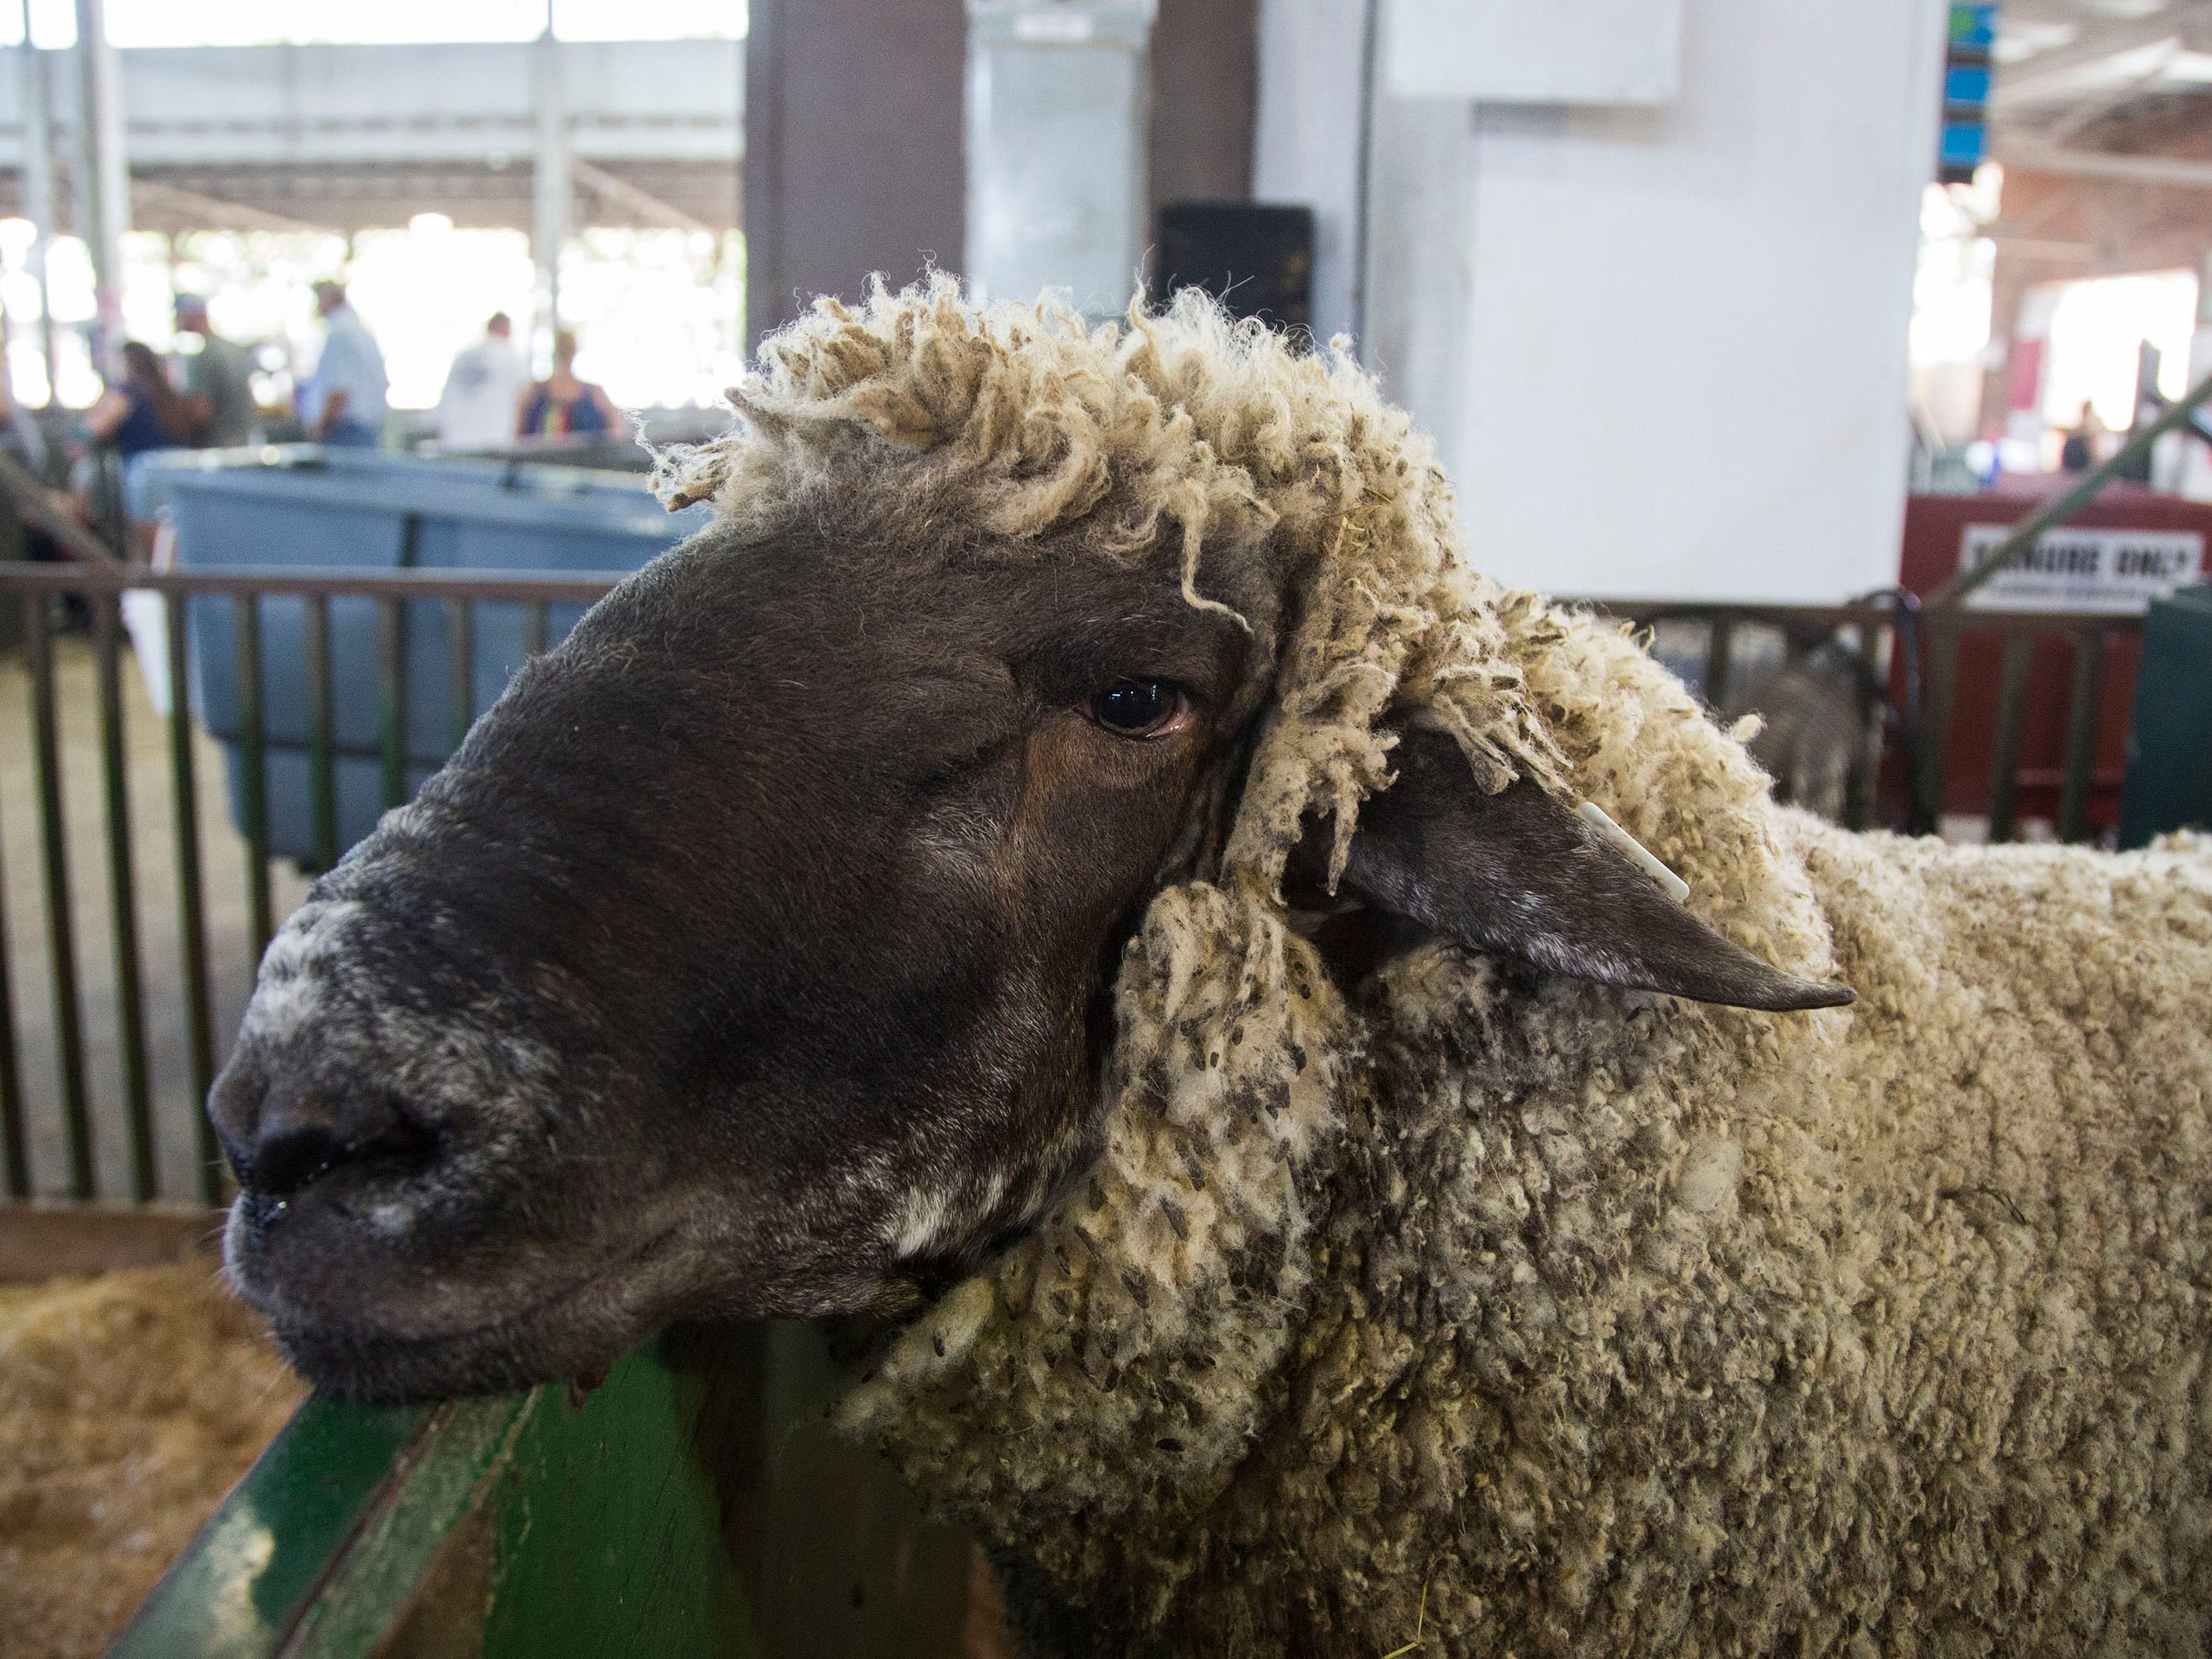 Doc, a two year old ram from Webster City, won first place in the Iowa State Fair biggest ram competition on Thursday, Aug. 9, 2018, in Des Moines. Doc weighed 457lbs, making him the second largest ram in fair history.